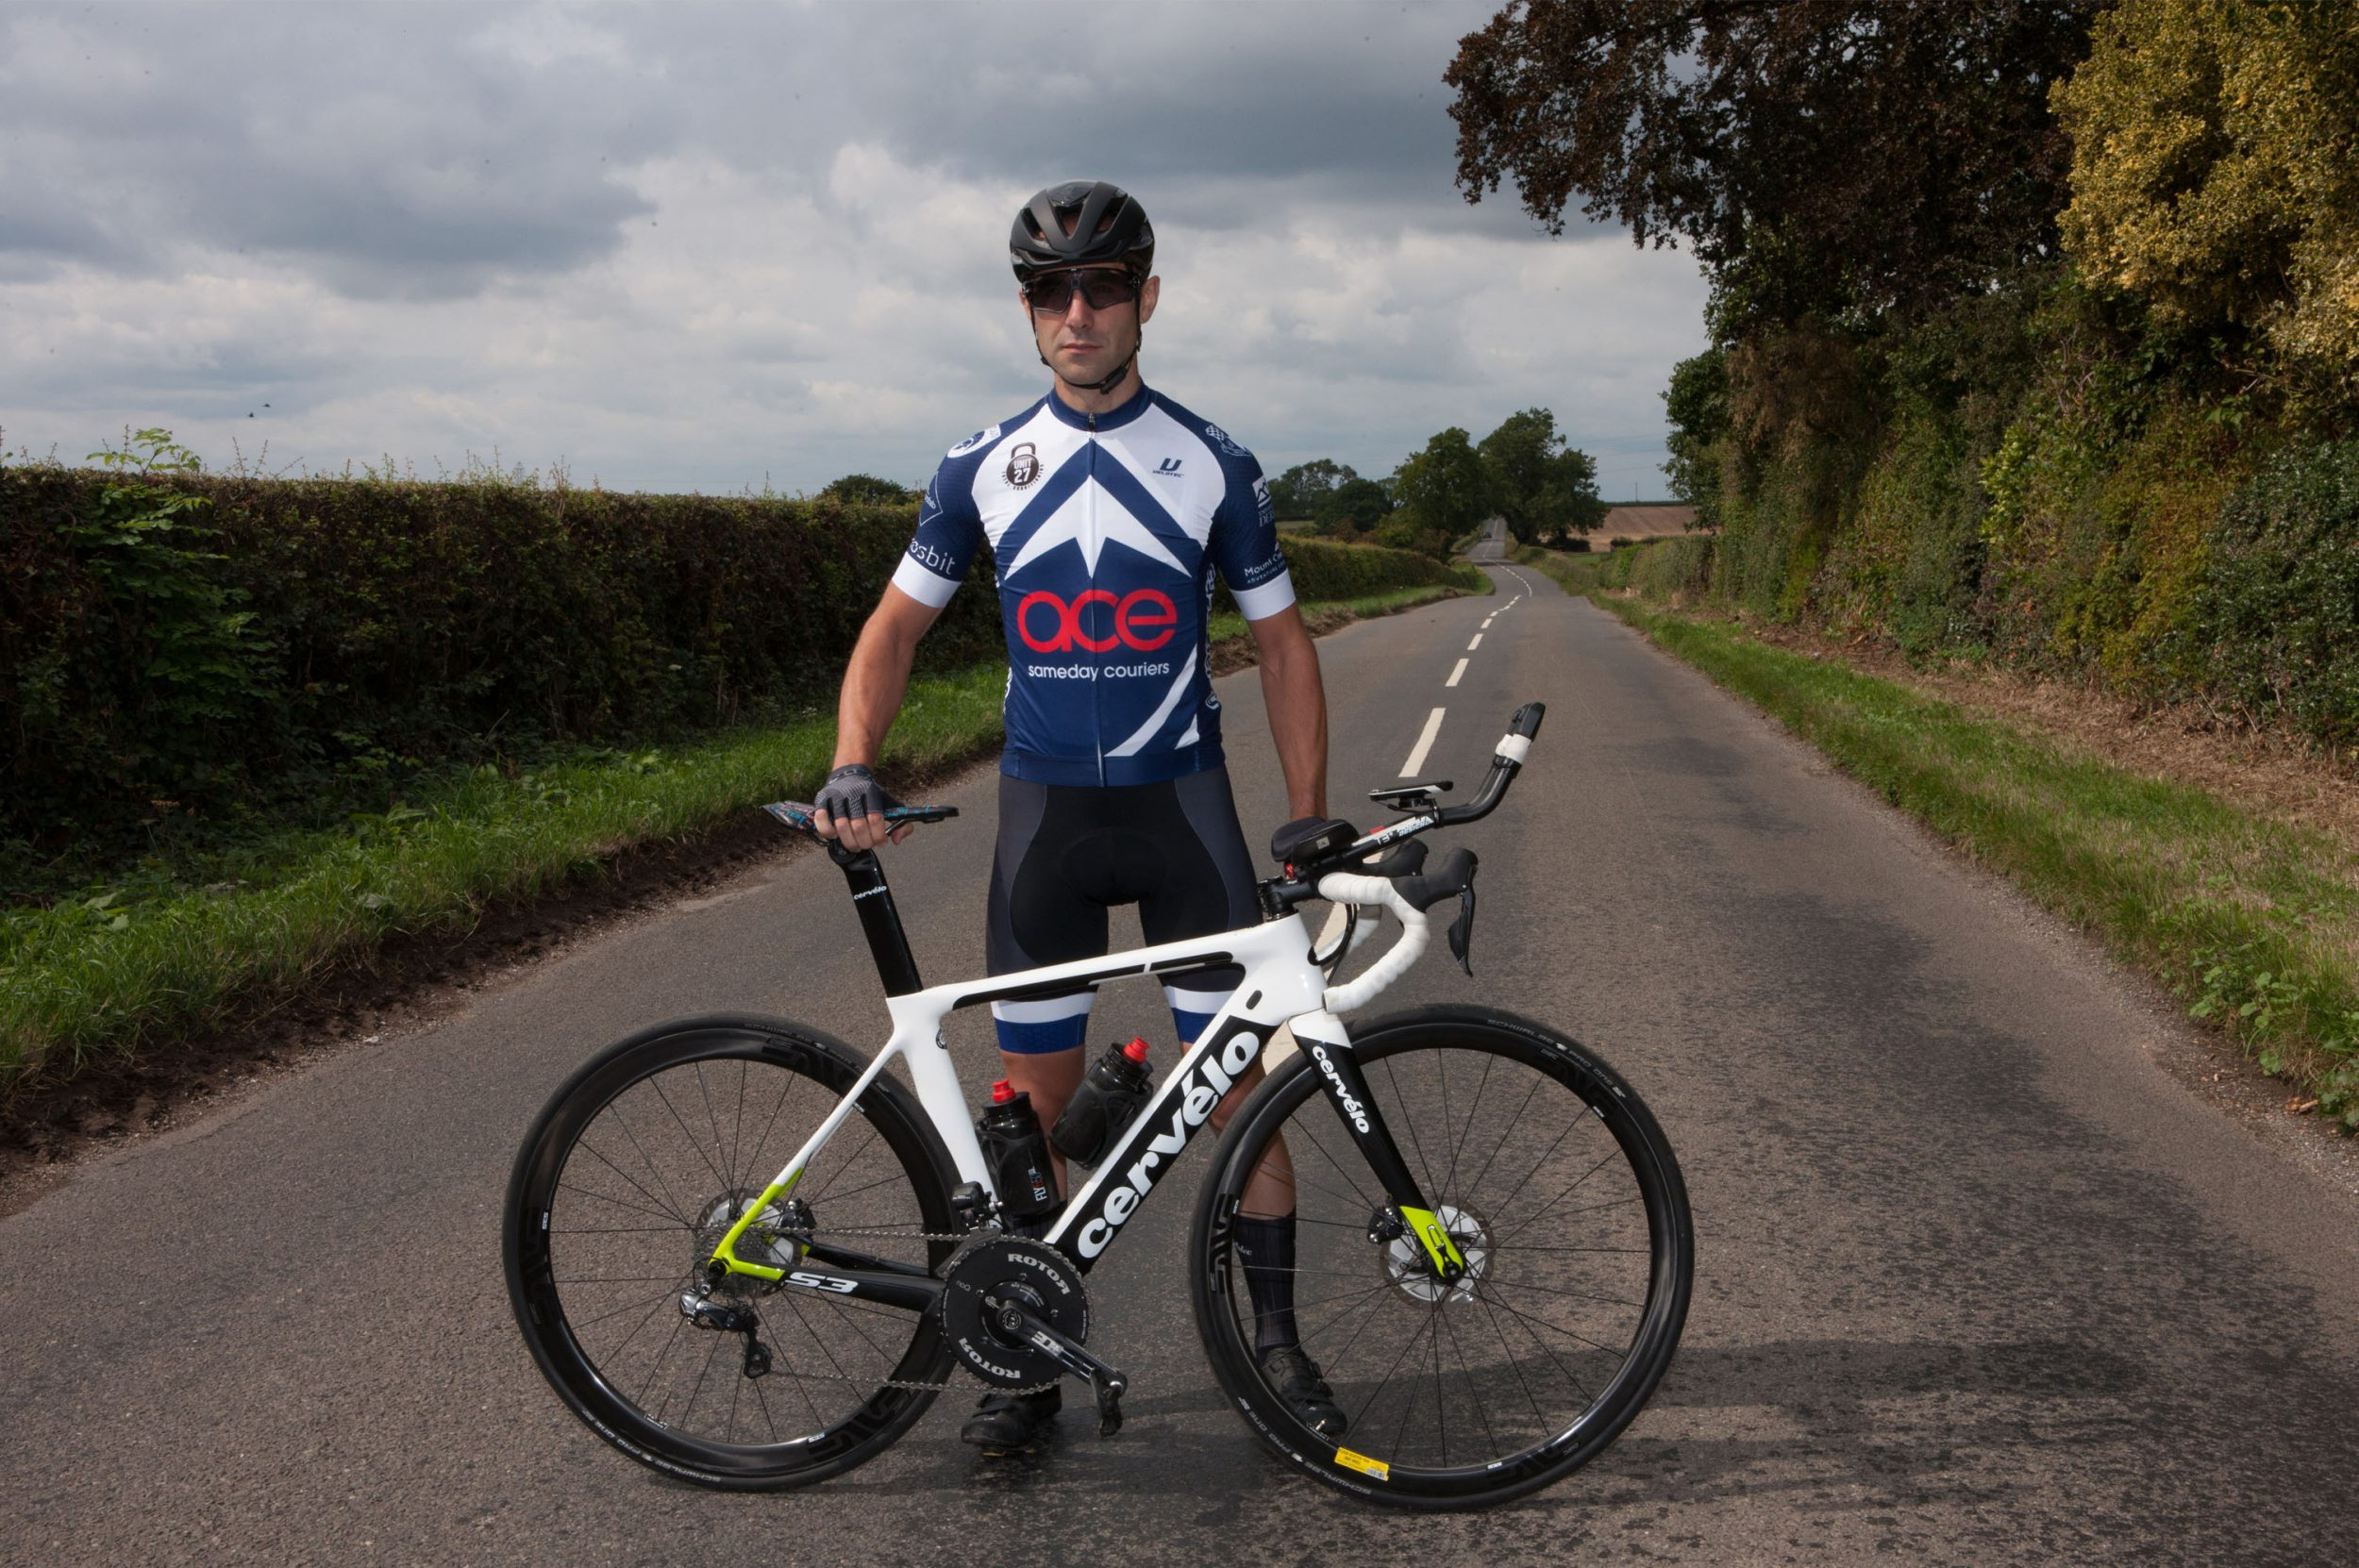 Leigh Timmis Guinness World Record Cyclist Fastest Cycle Across Europe